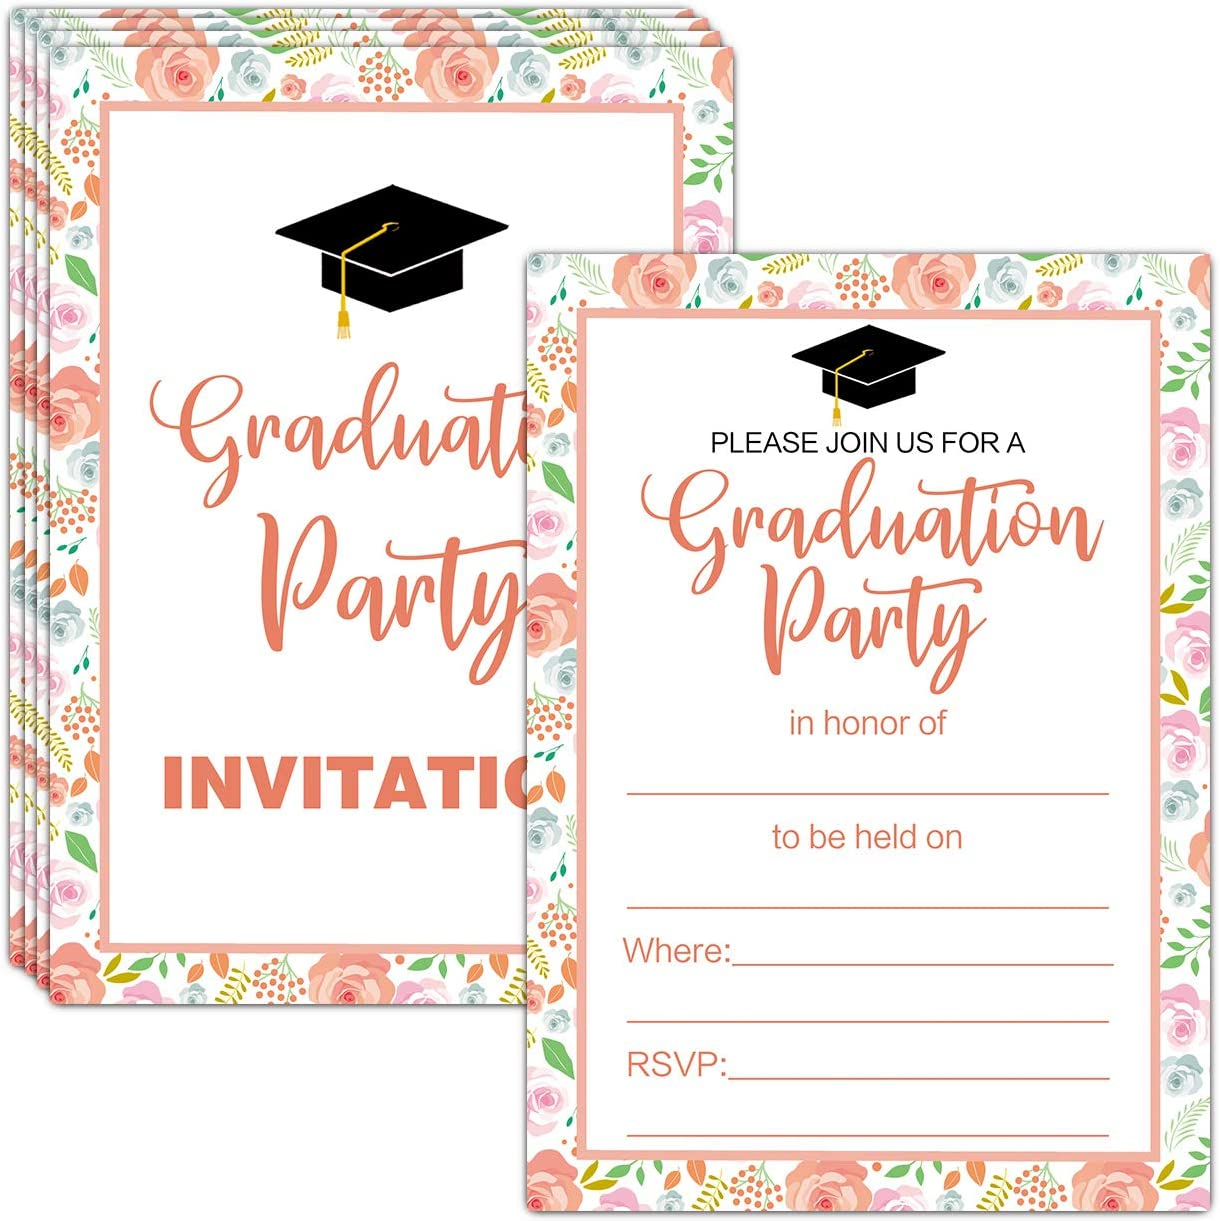 Graduation Going Away Party Invitation,Announcement,Map of United States,Airplane,Unisex,Personalize,Printed Card,Envelope